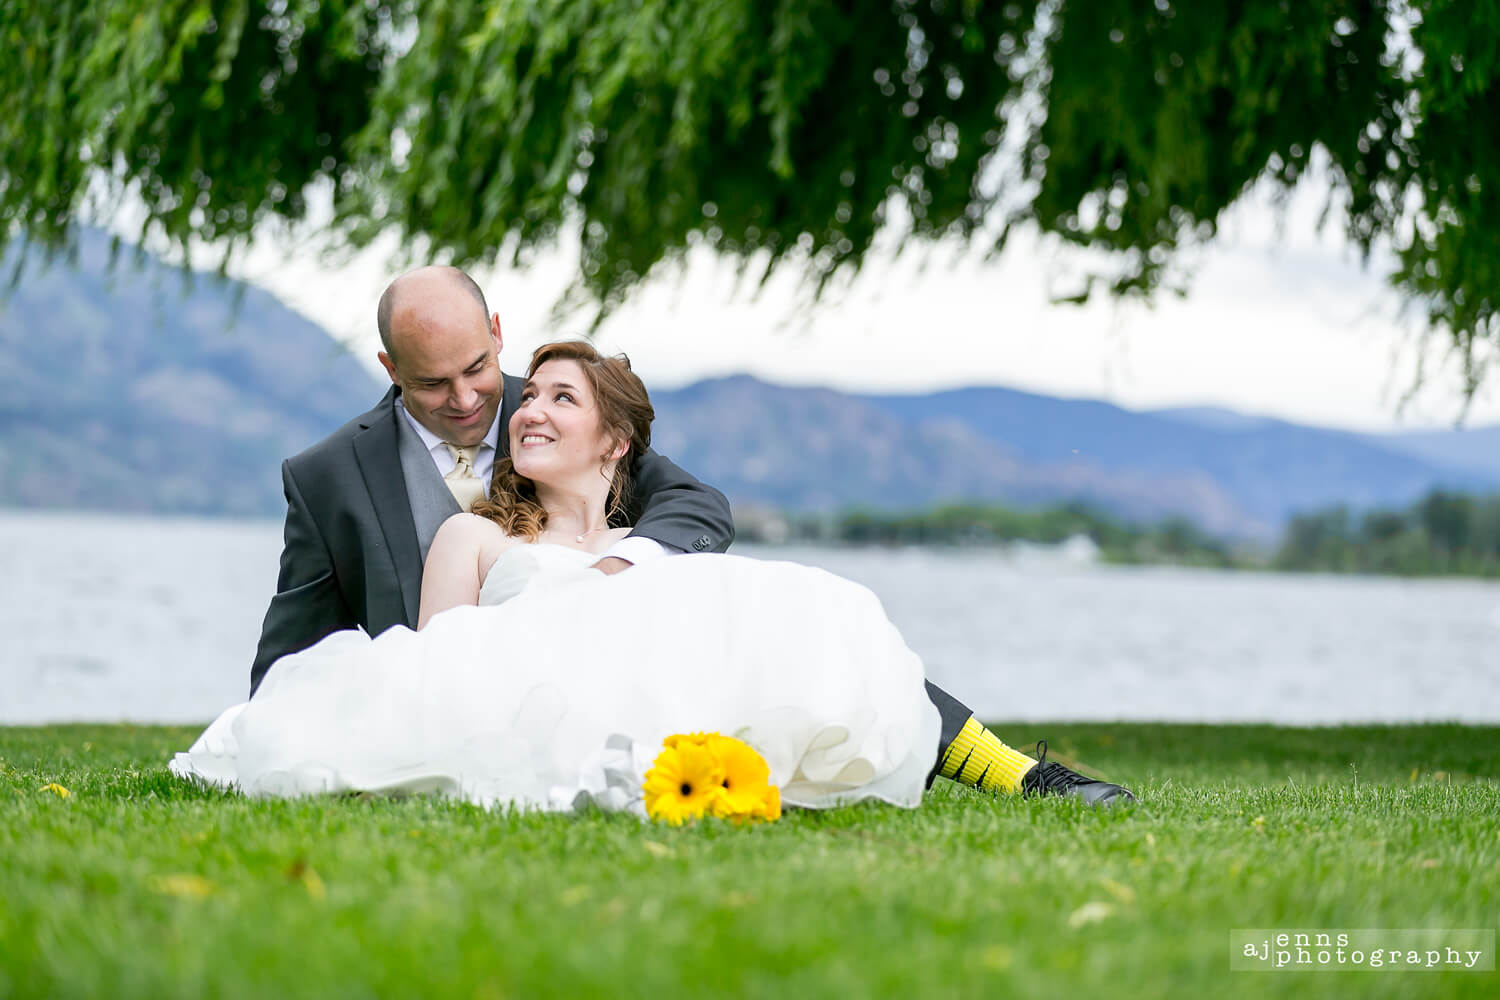 The bride and groom sitting in the grass by the lake in Kelowna B.C.